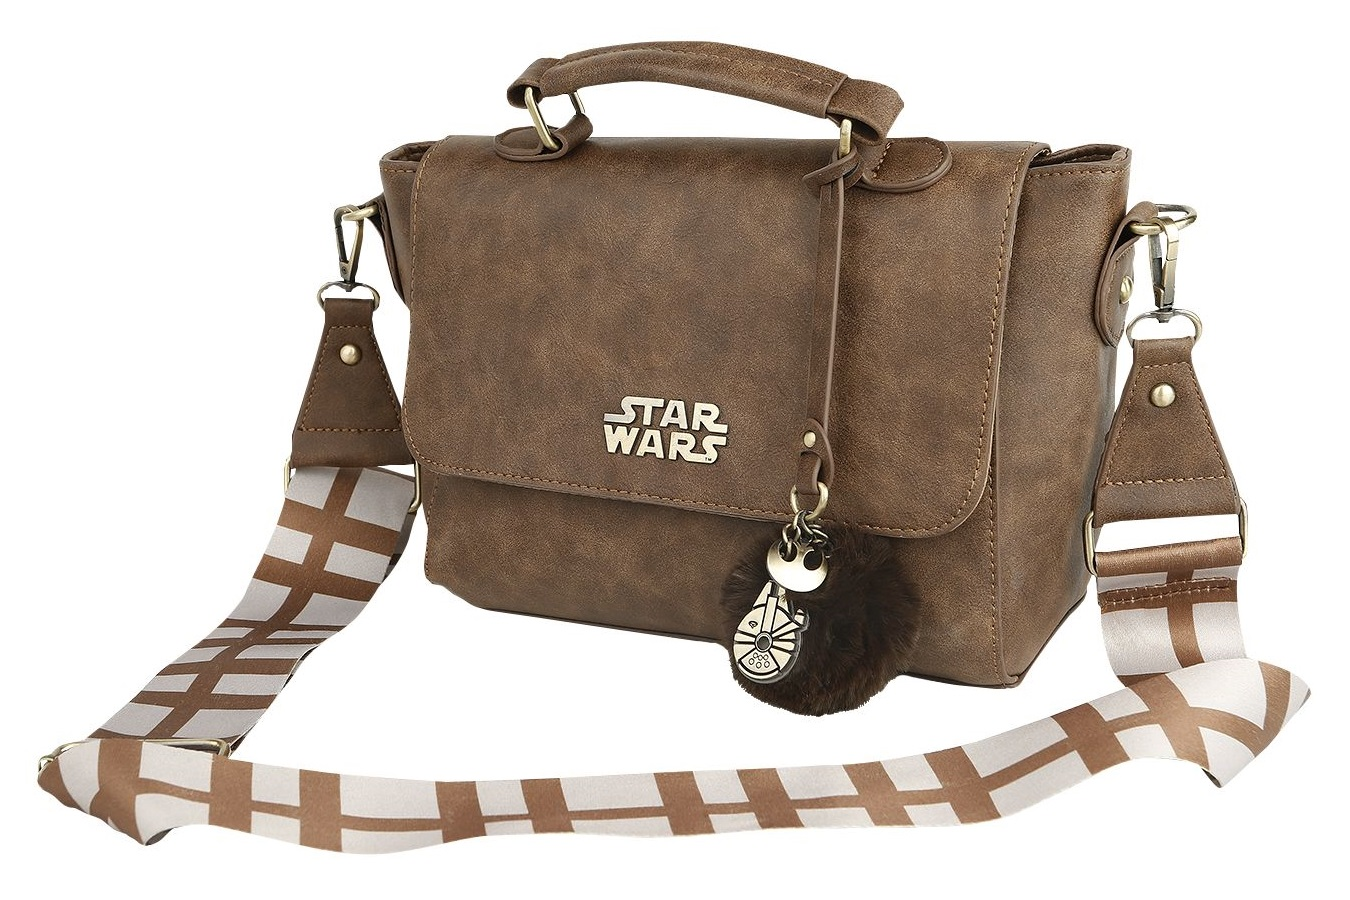 Star Wars Chewbacca Handbag at EMP Online